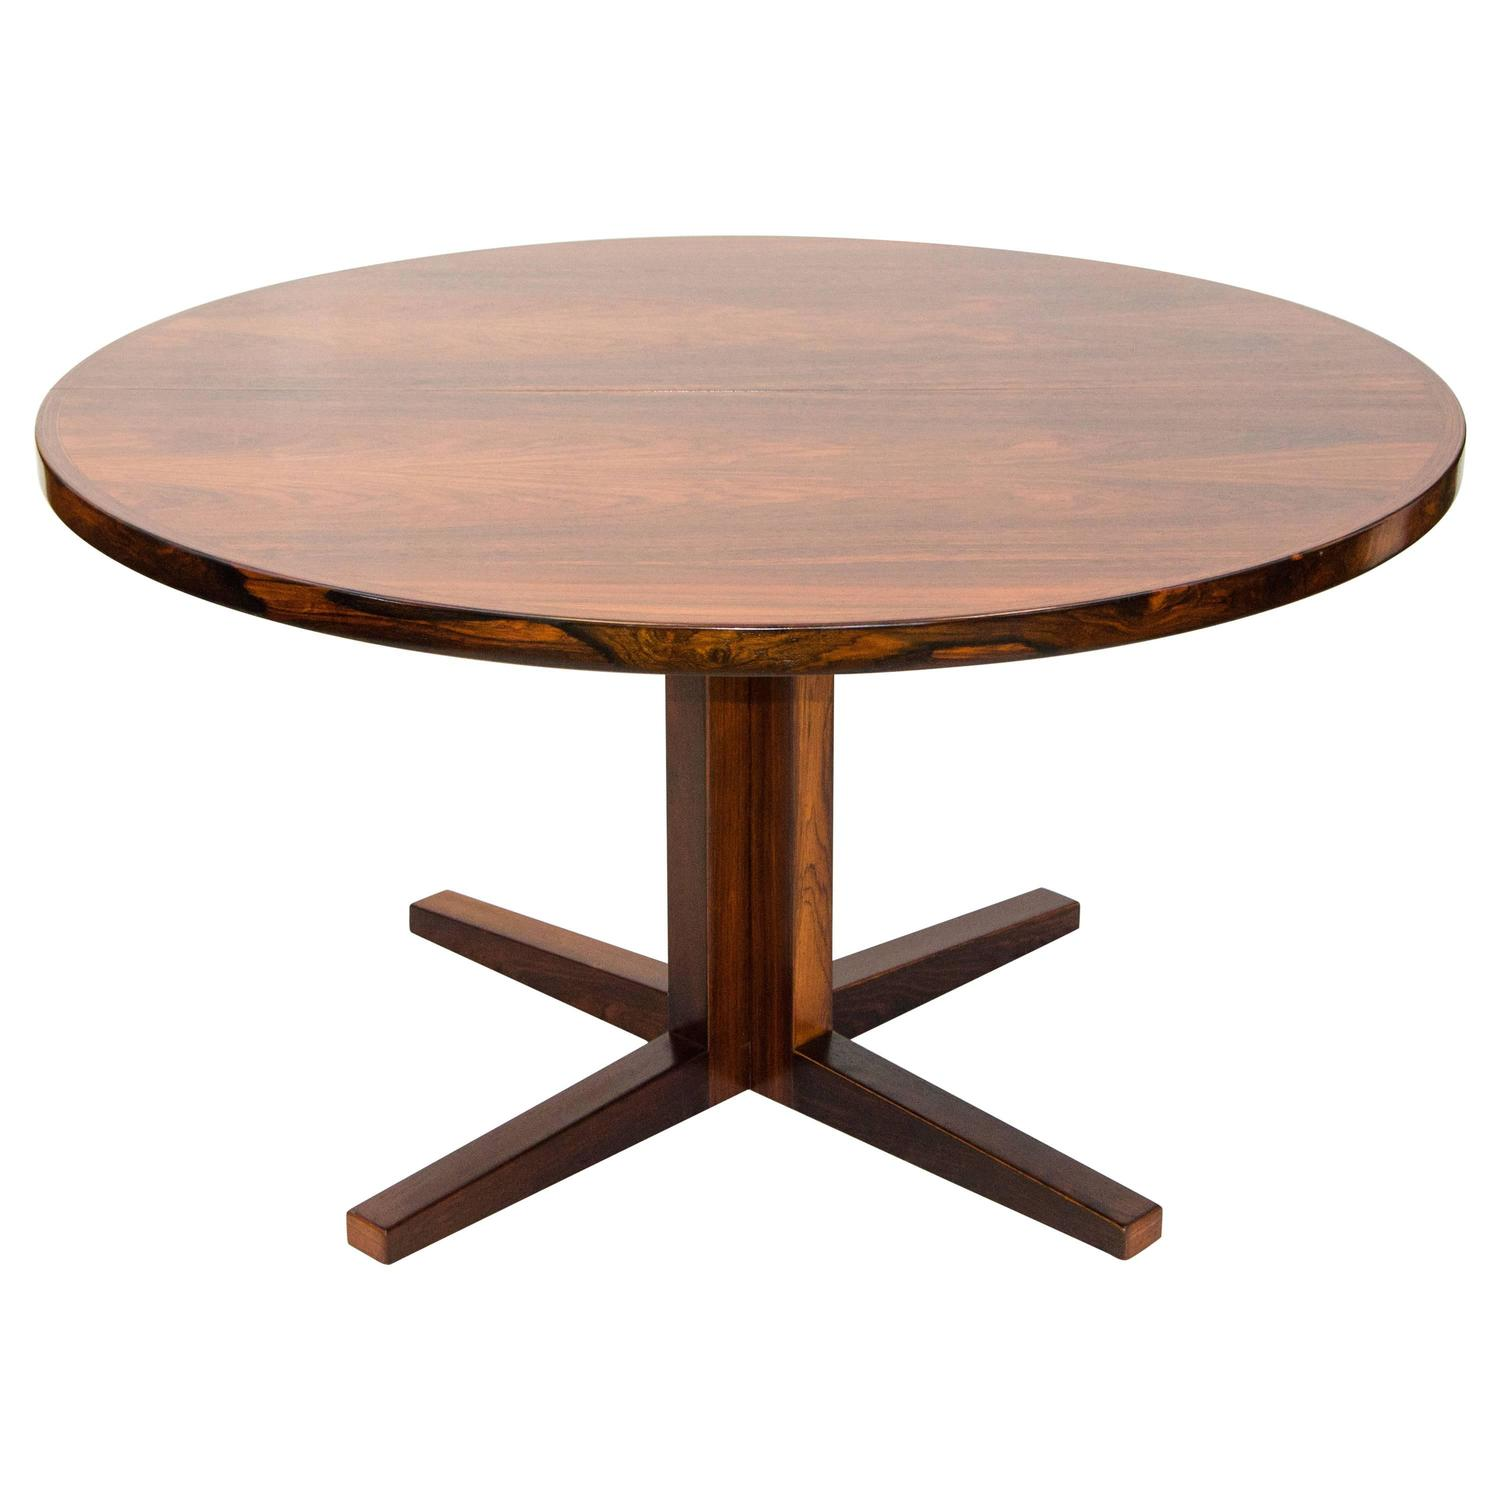 Modern round pedestal dining table - Modern Round Pedestal Dining Table 57